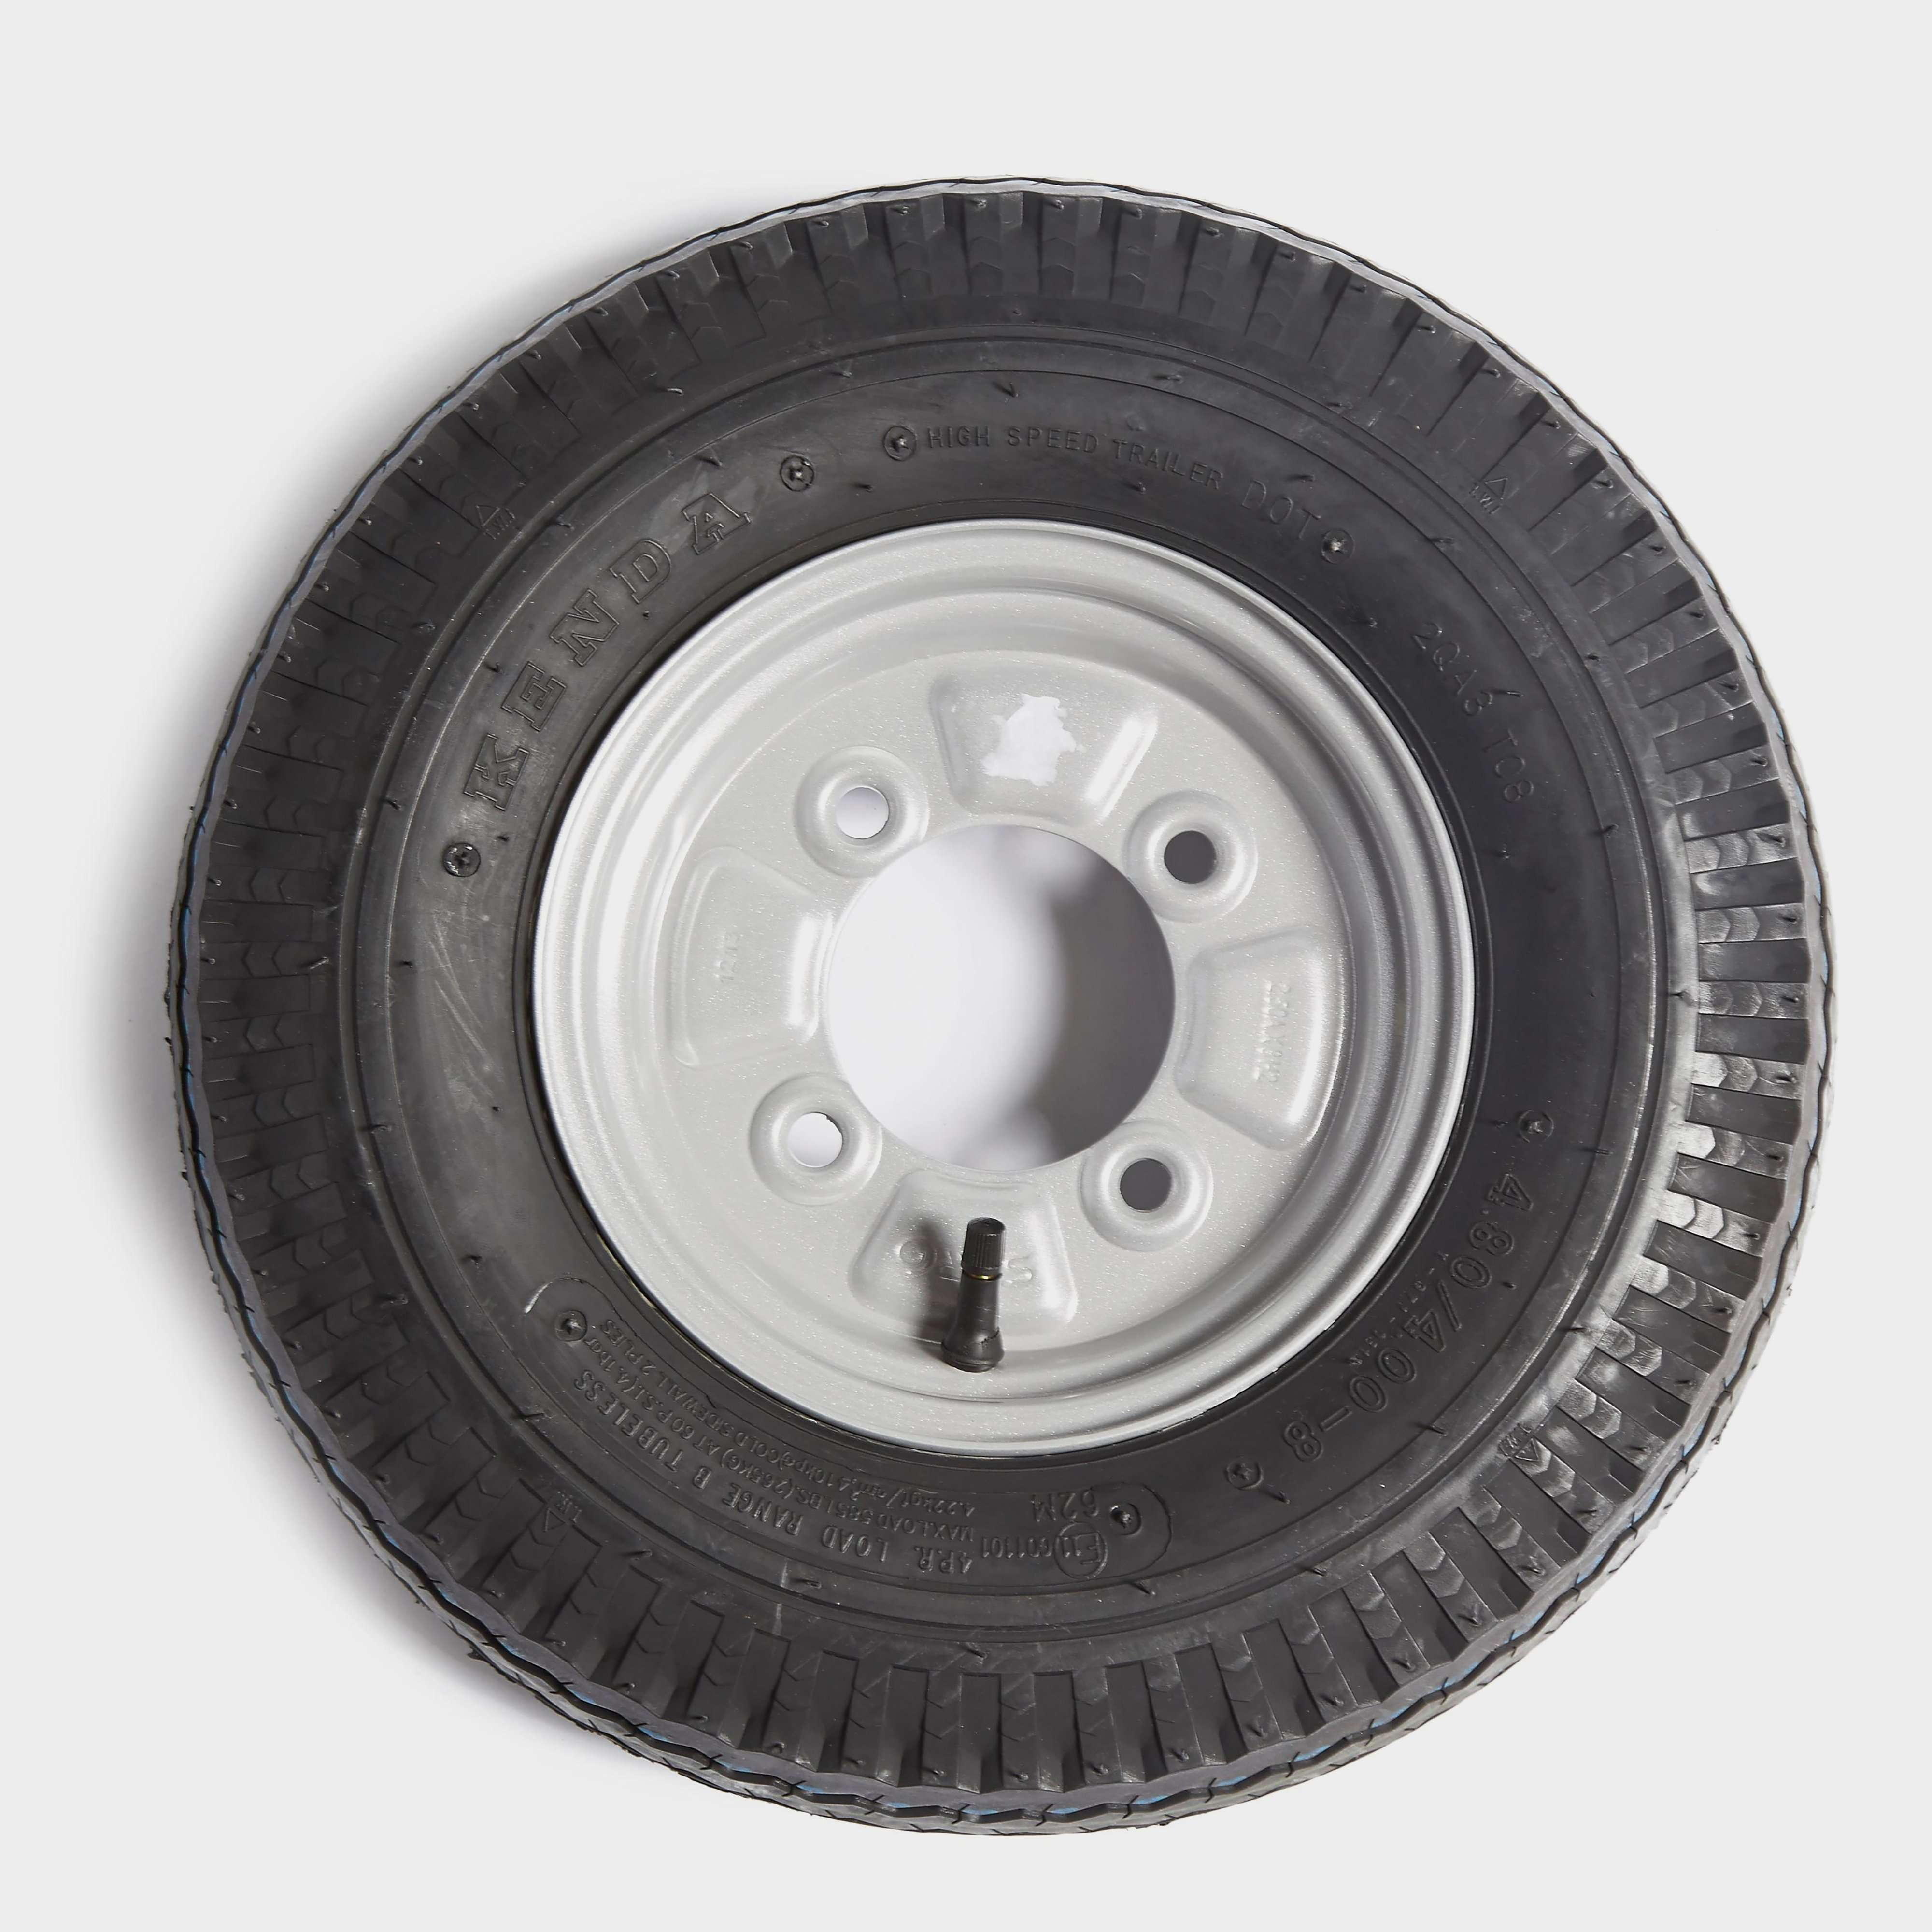 MAYPOLE Spare Wheel for MP68122 Trailer